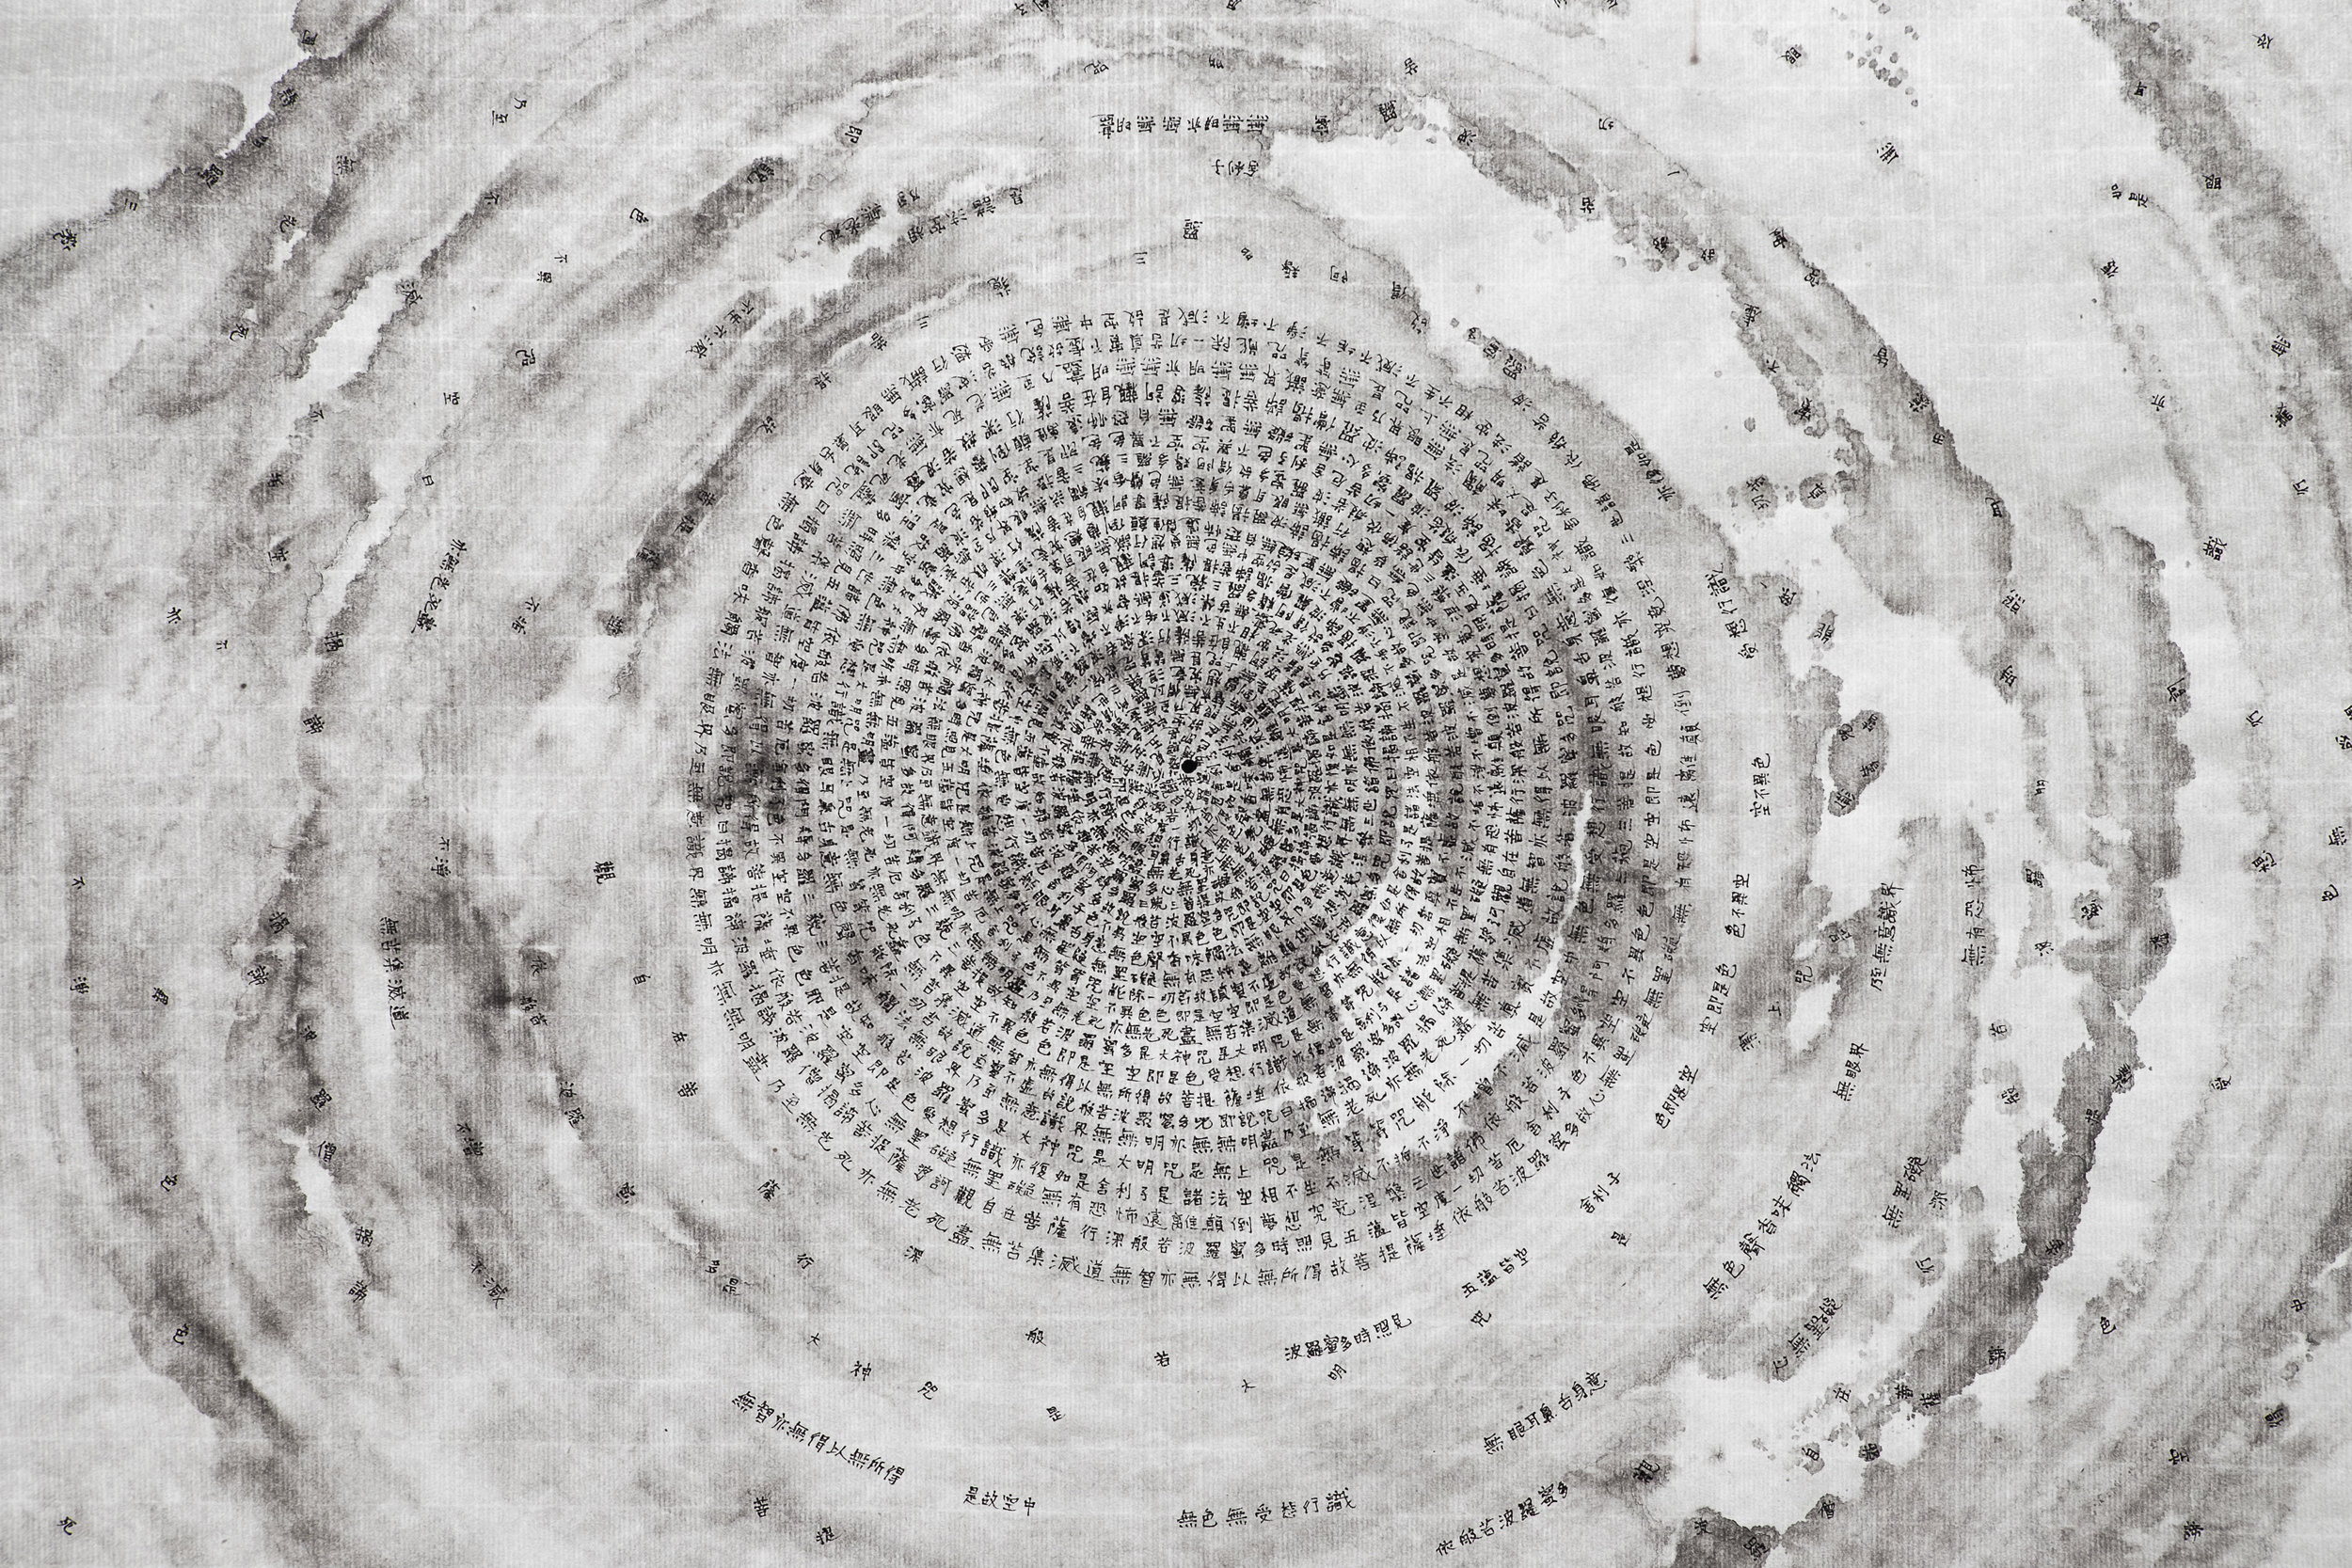 Charwei Tsai,  We Came Whirling Out of Nothingness I  (detail), 2014. Ink on rice paper